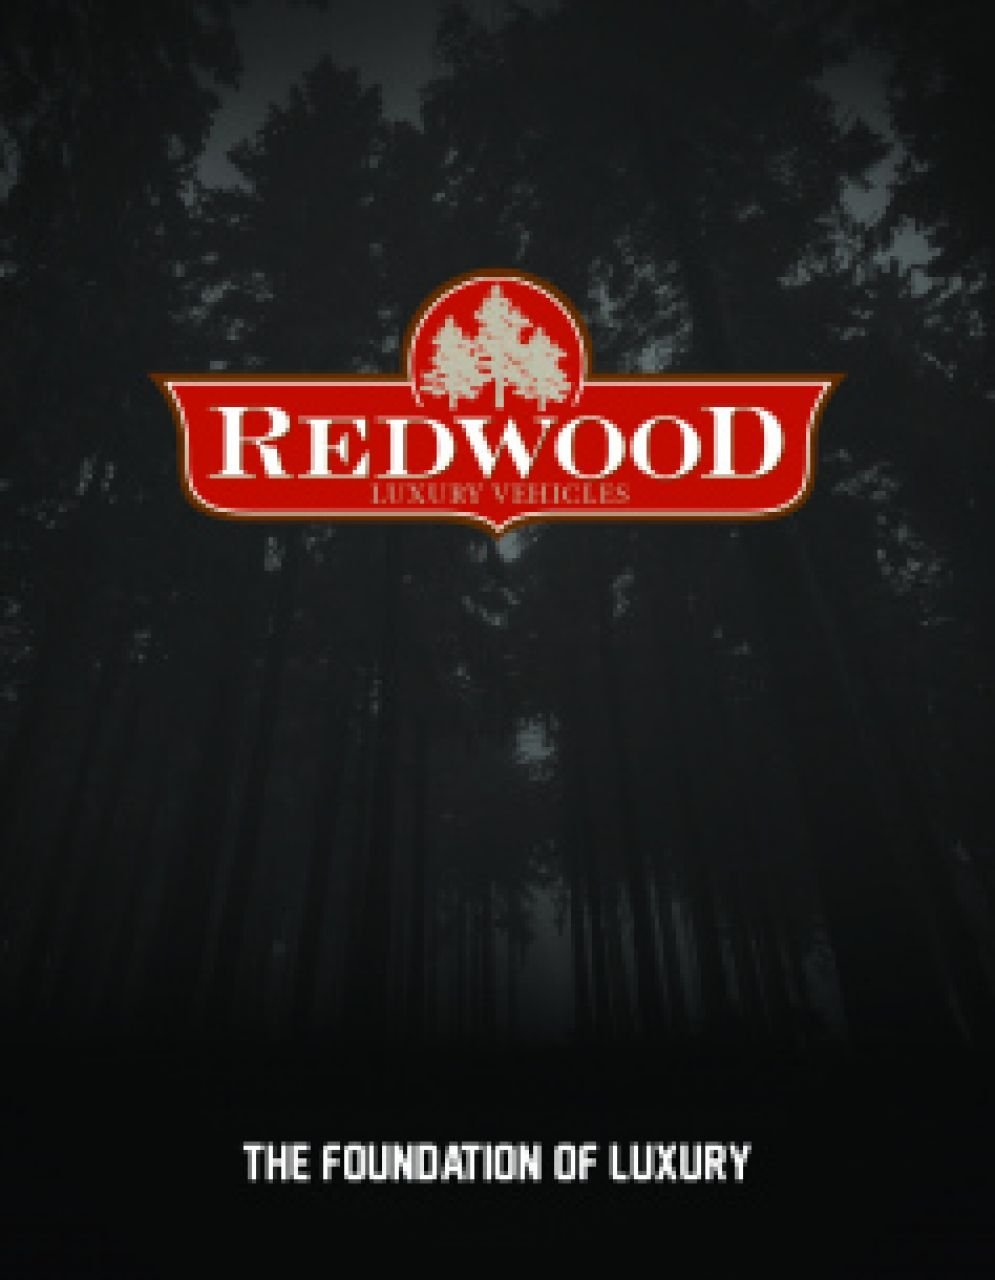 redwood-2019-broch-alsrv-002-pdf